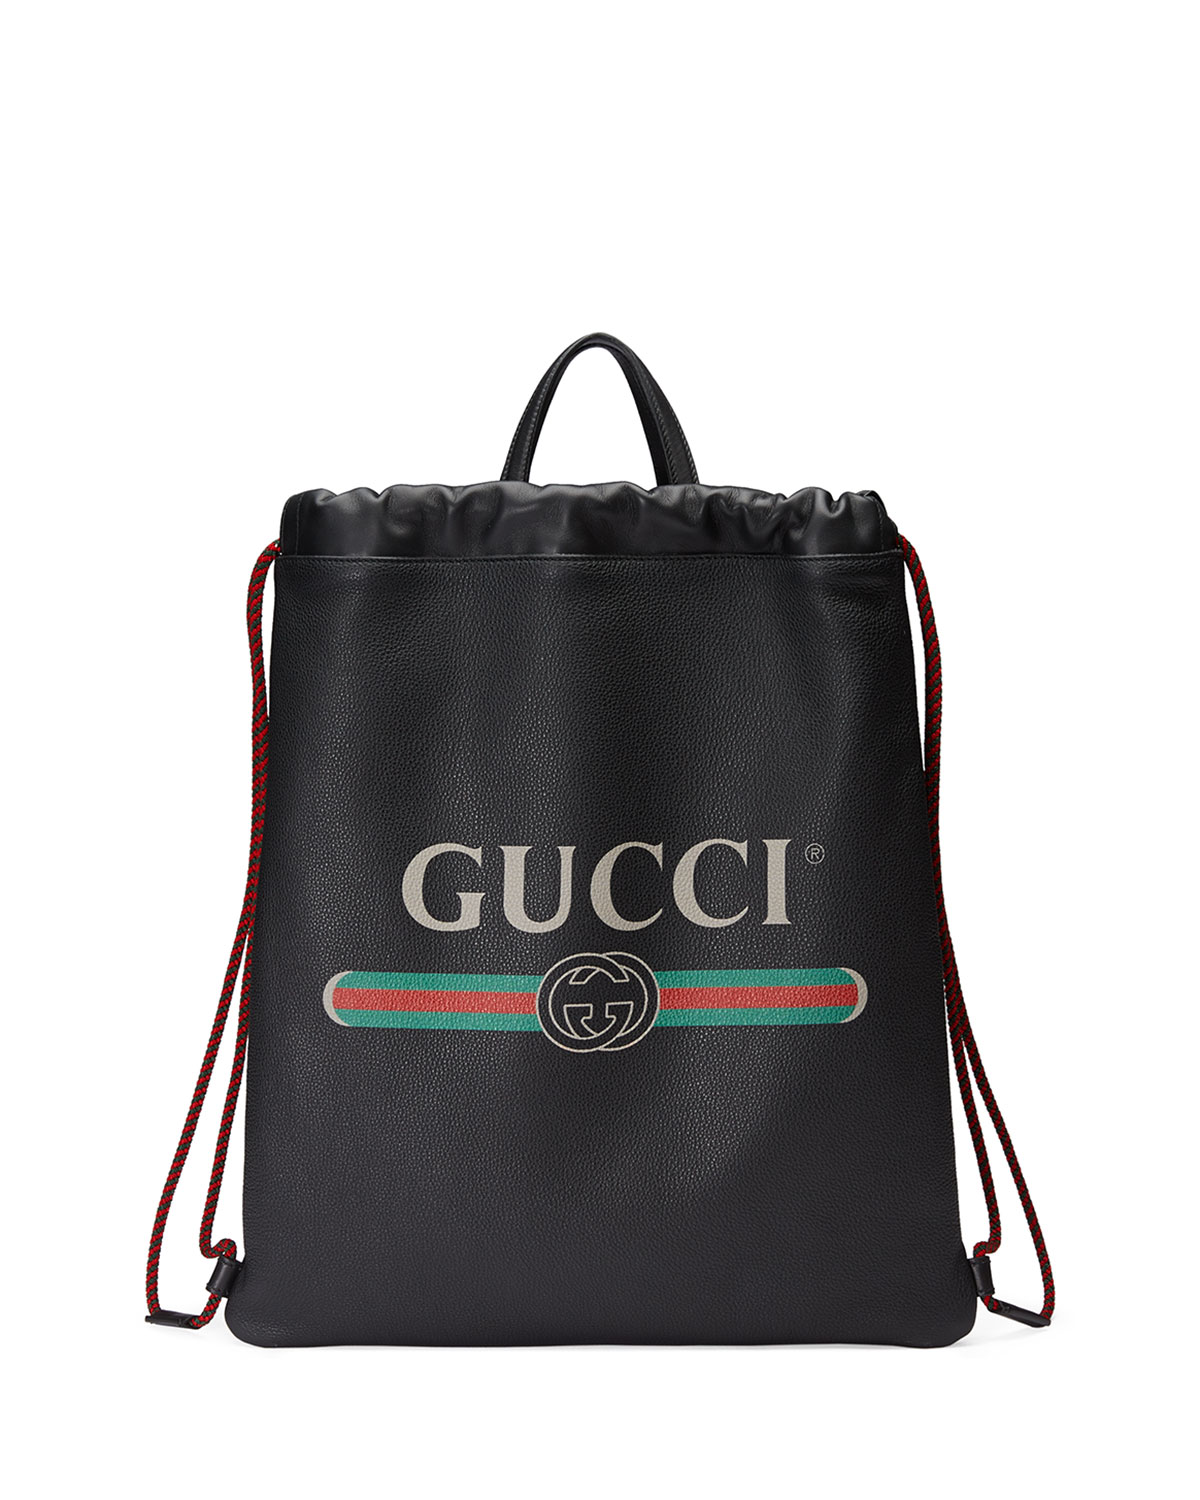 23aca5be5f Gucci-Print Leather Drawstring Backpack